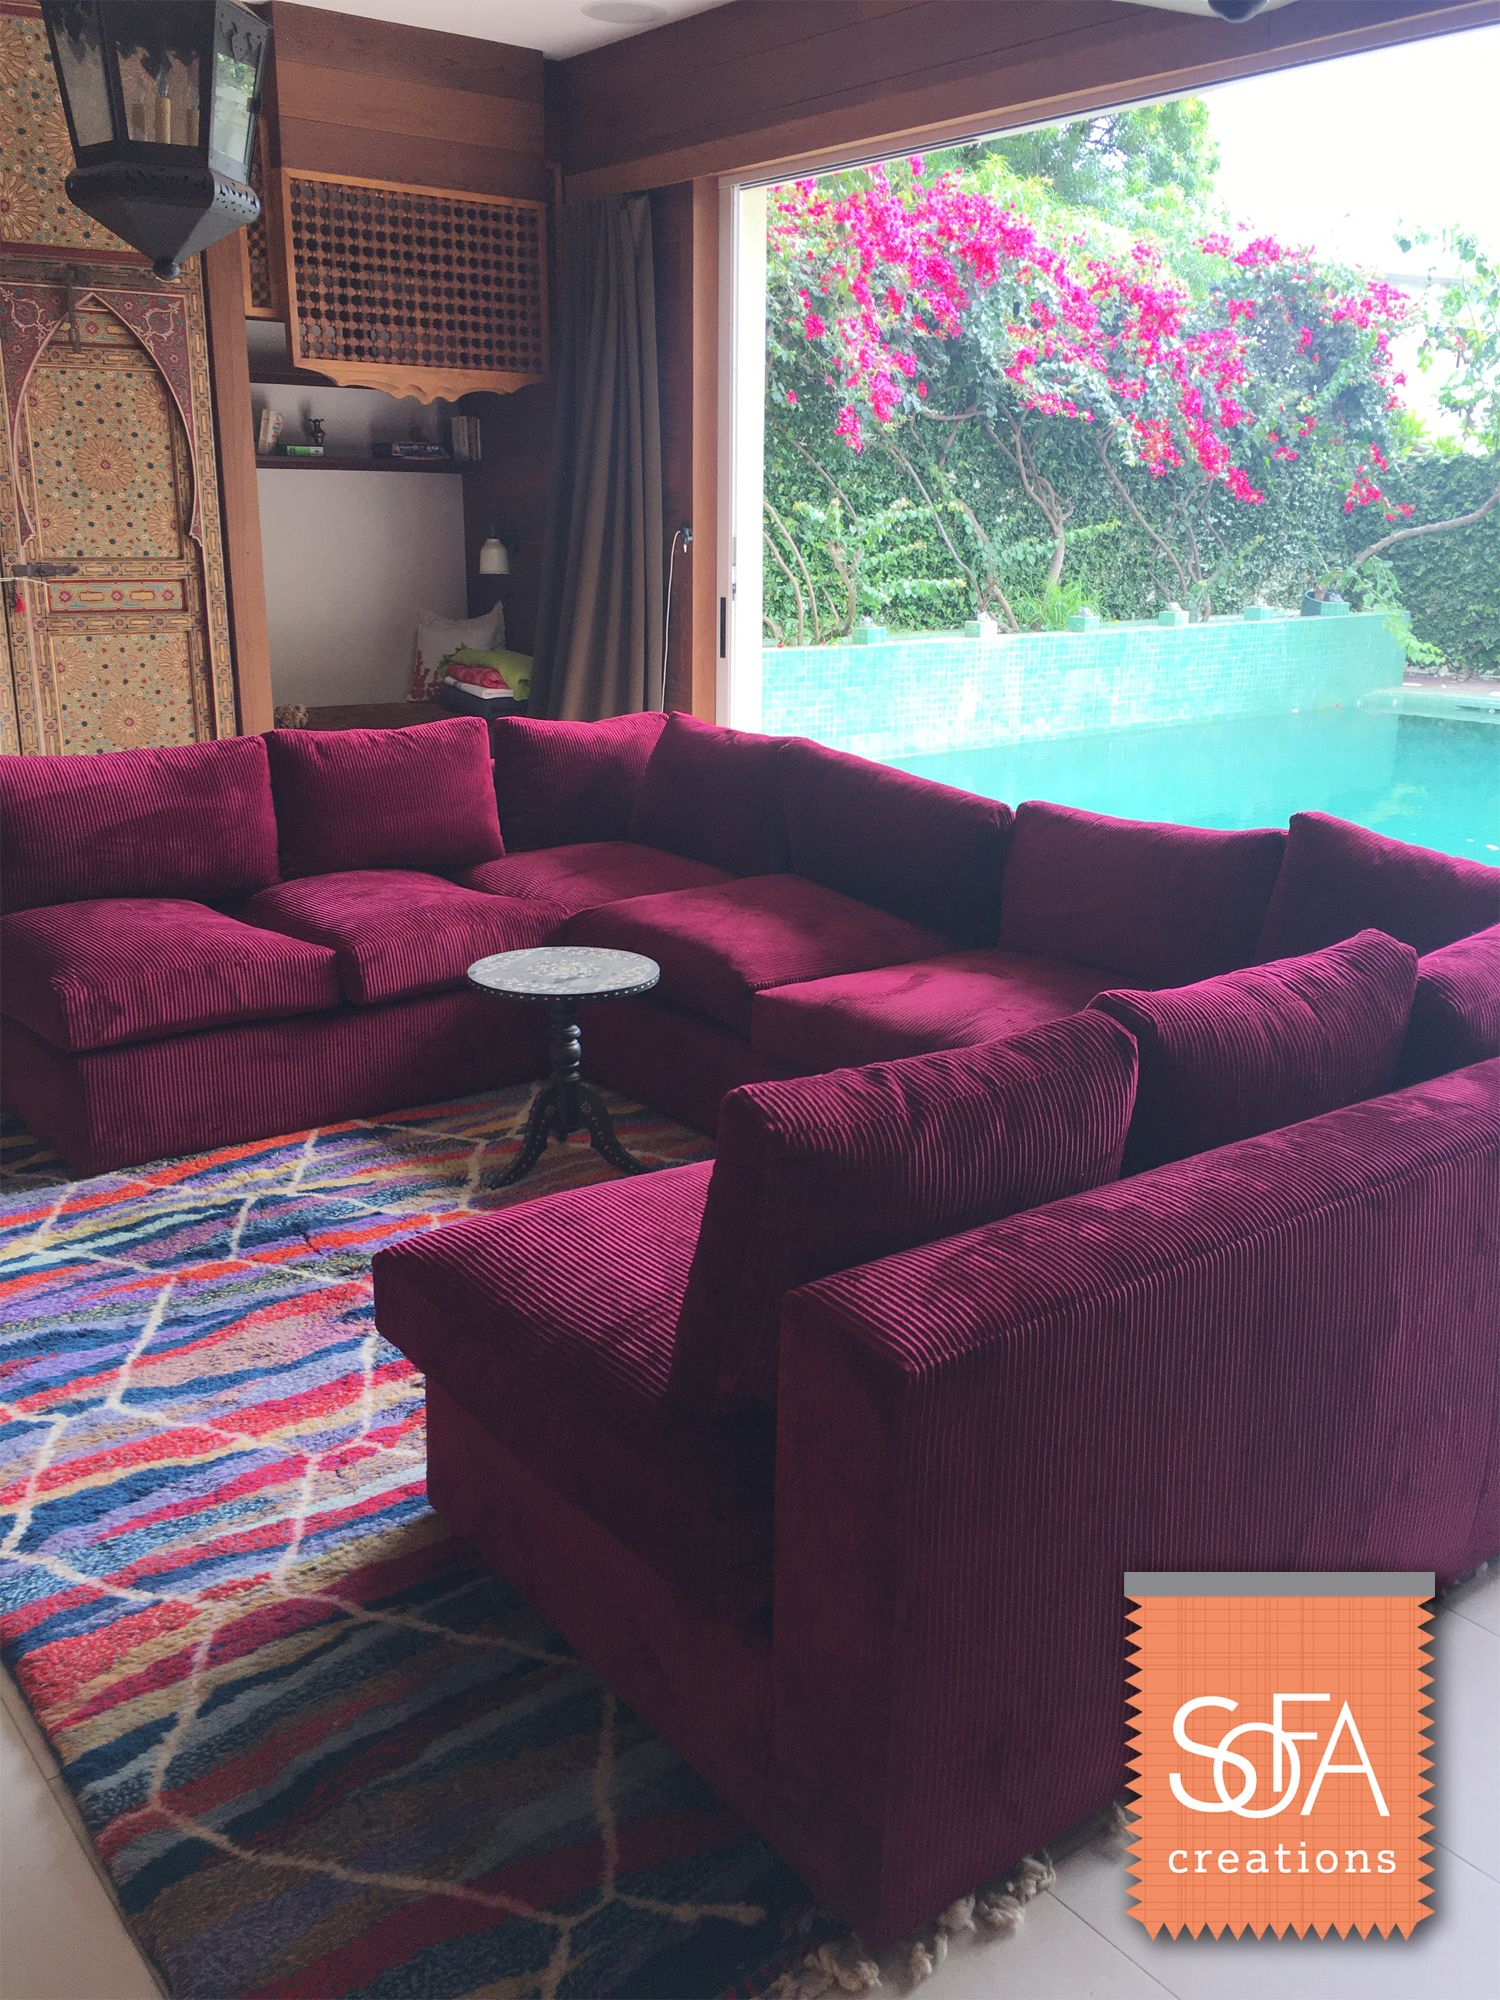 This Beautiful Jennifer Sectional Looks Picturesque In A Transitional Living Room Indoor Outdoor Layout Sofa Creations Couch Interiordesign